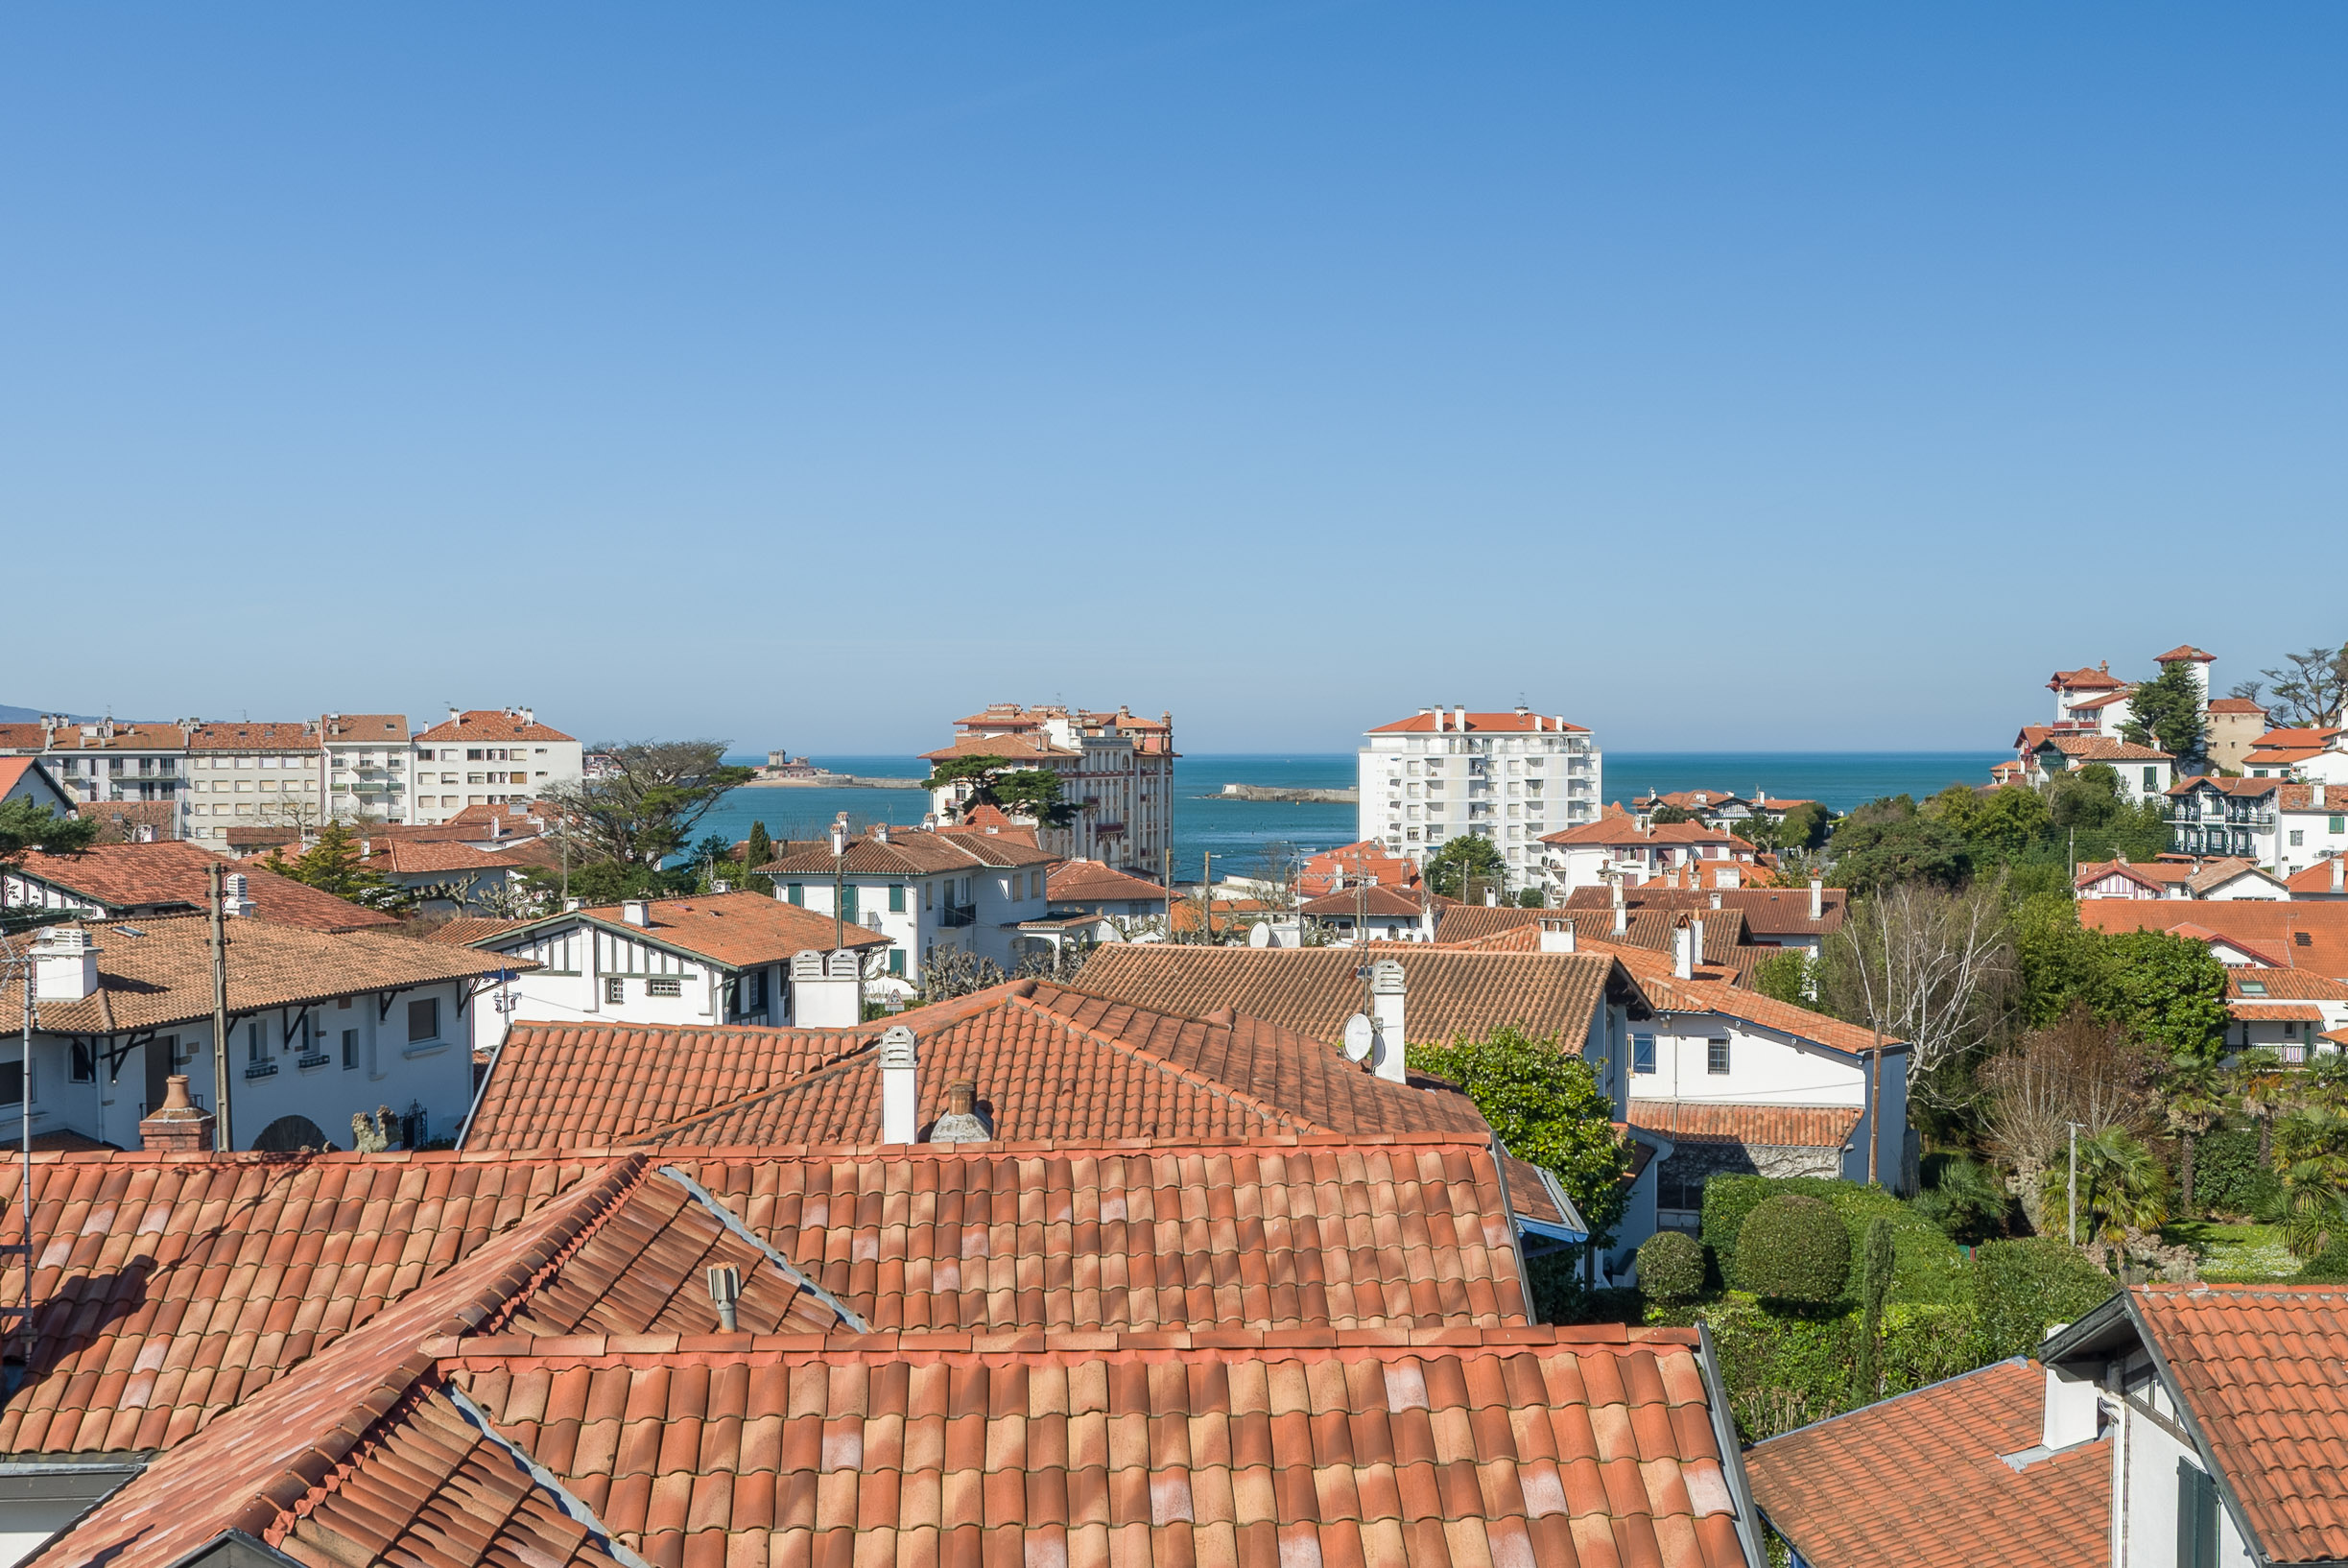 Saint-Jean-de-Luz real estate